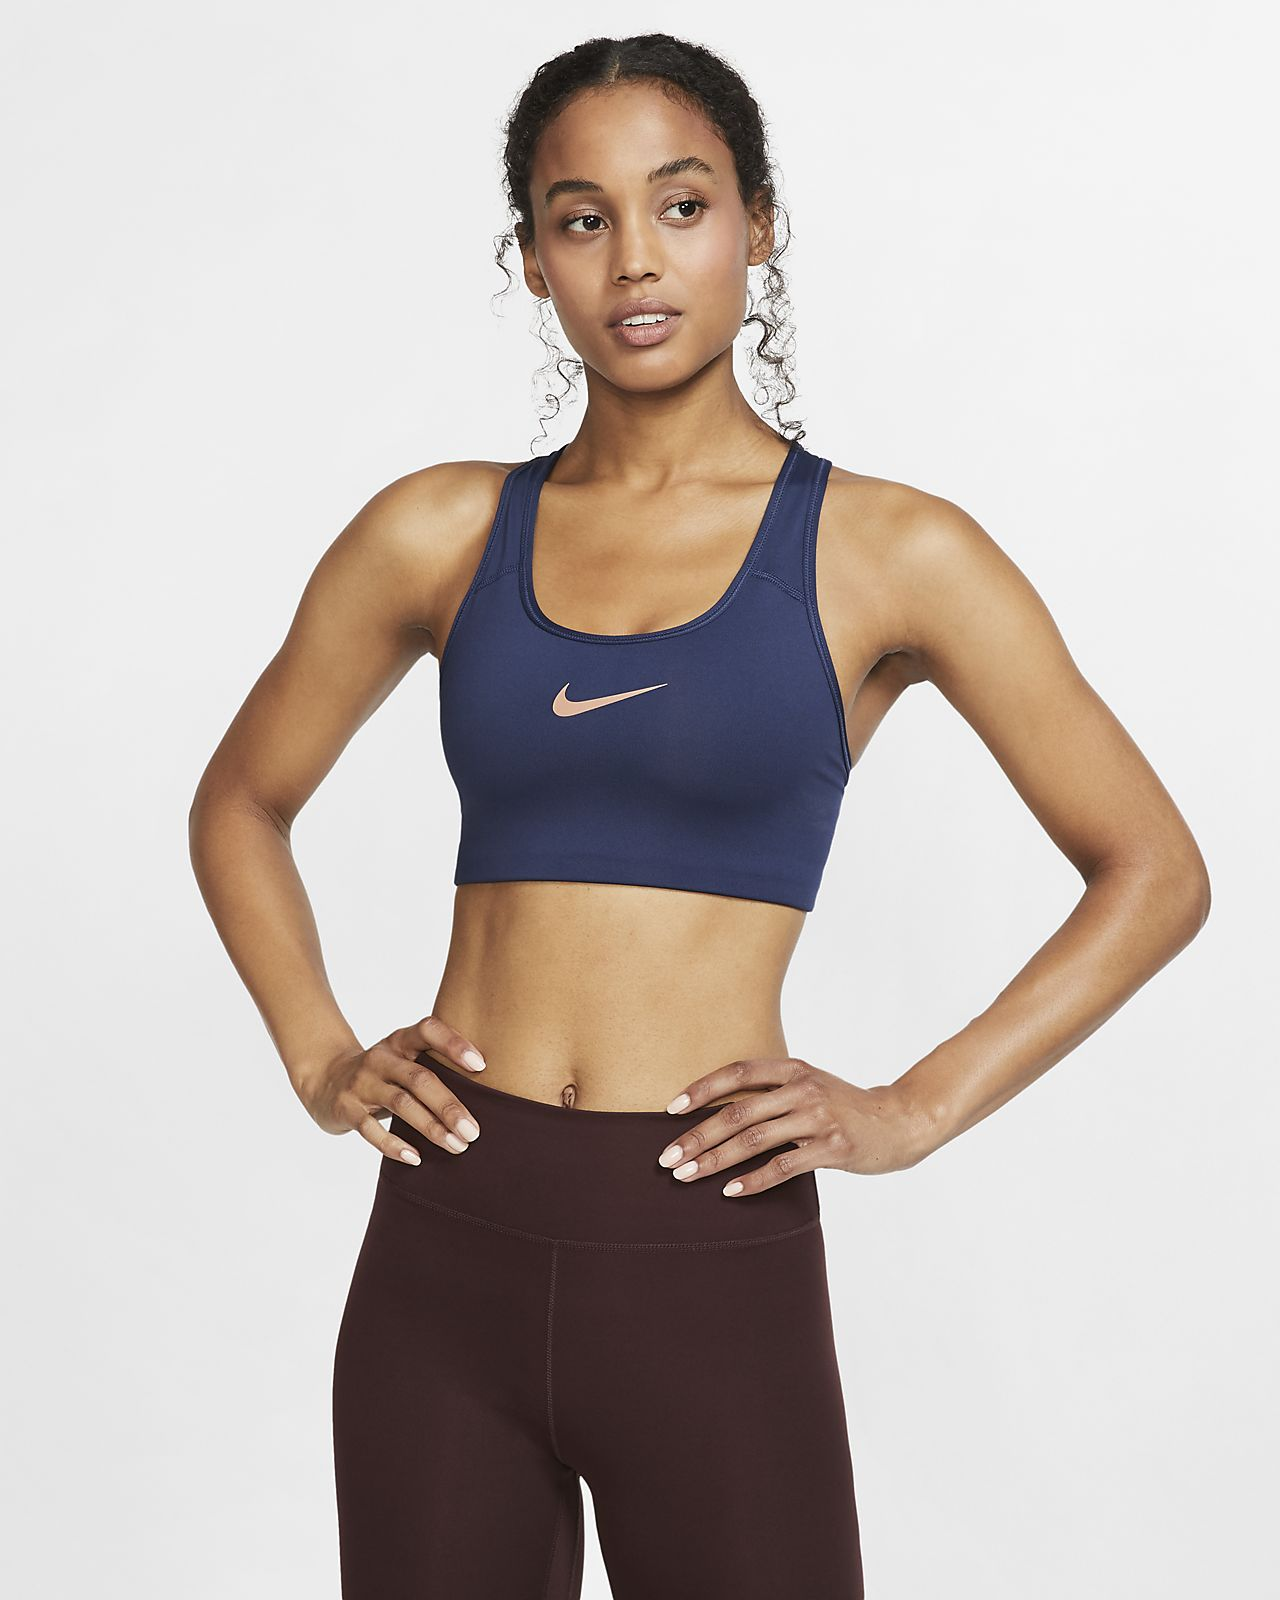 82c50285b9ddd Nike Women's Swoosh Medium-Support Sports Bra. Nike.com MA